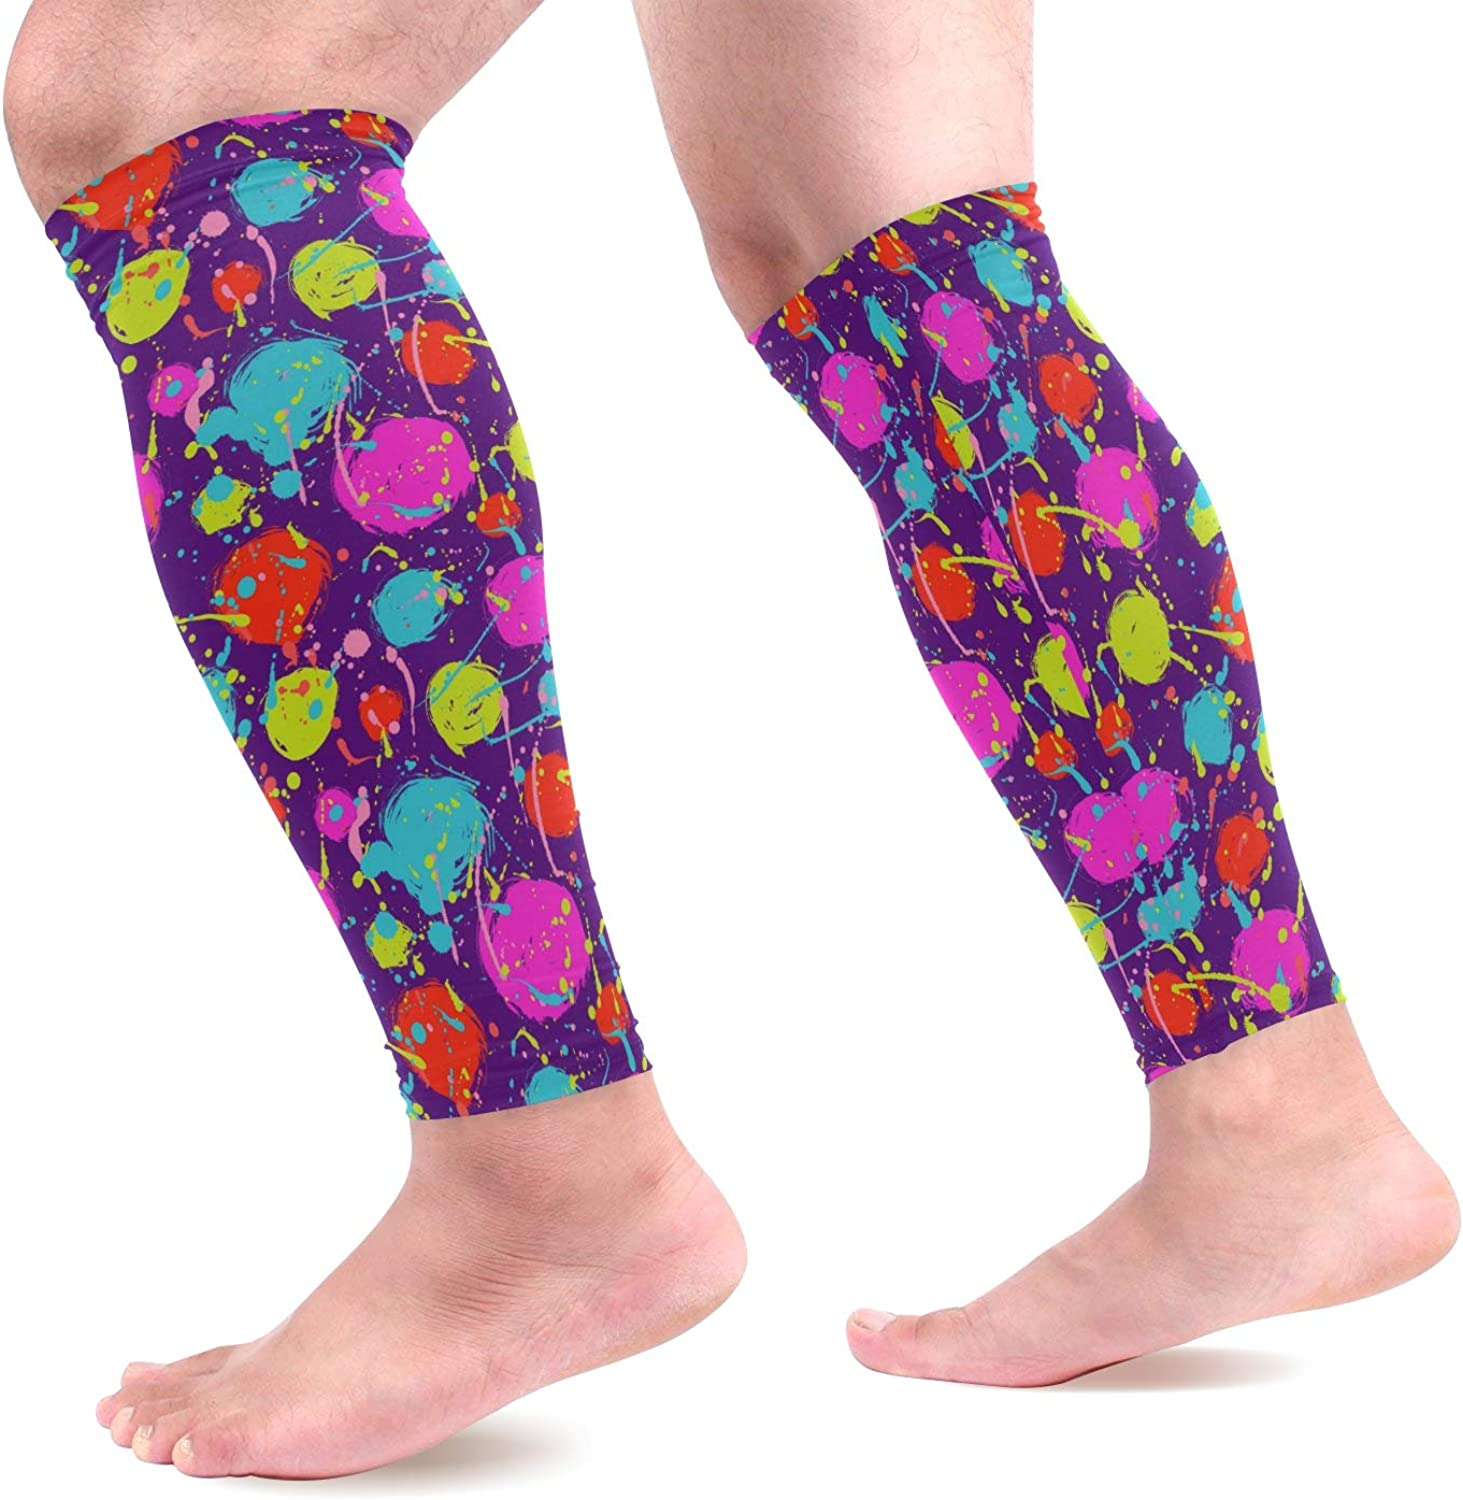 visesunny Painted Circles Pattern Sports Calf Support Sleeves for Muscle Pain Relief, Improved Circulation Compression Effective Support for Running, Jogging,Workout,Recovery(1 Pair)